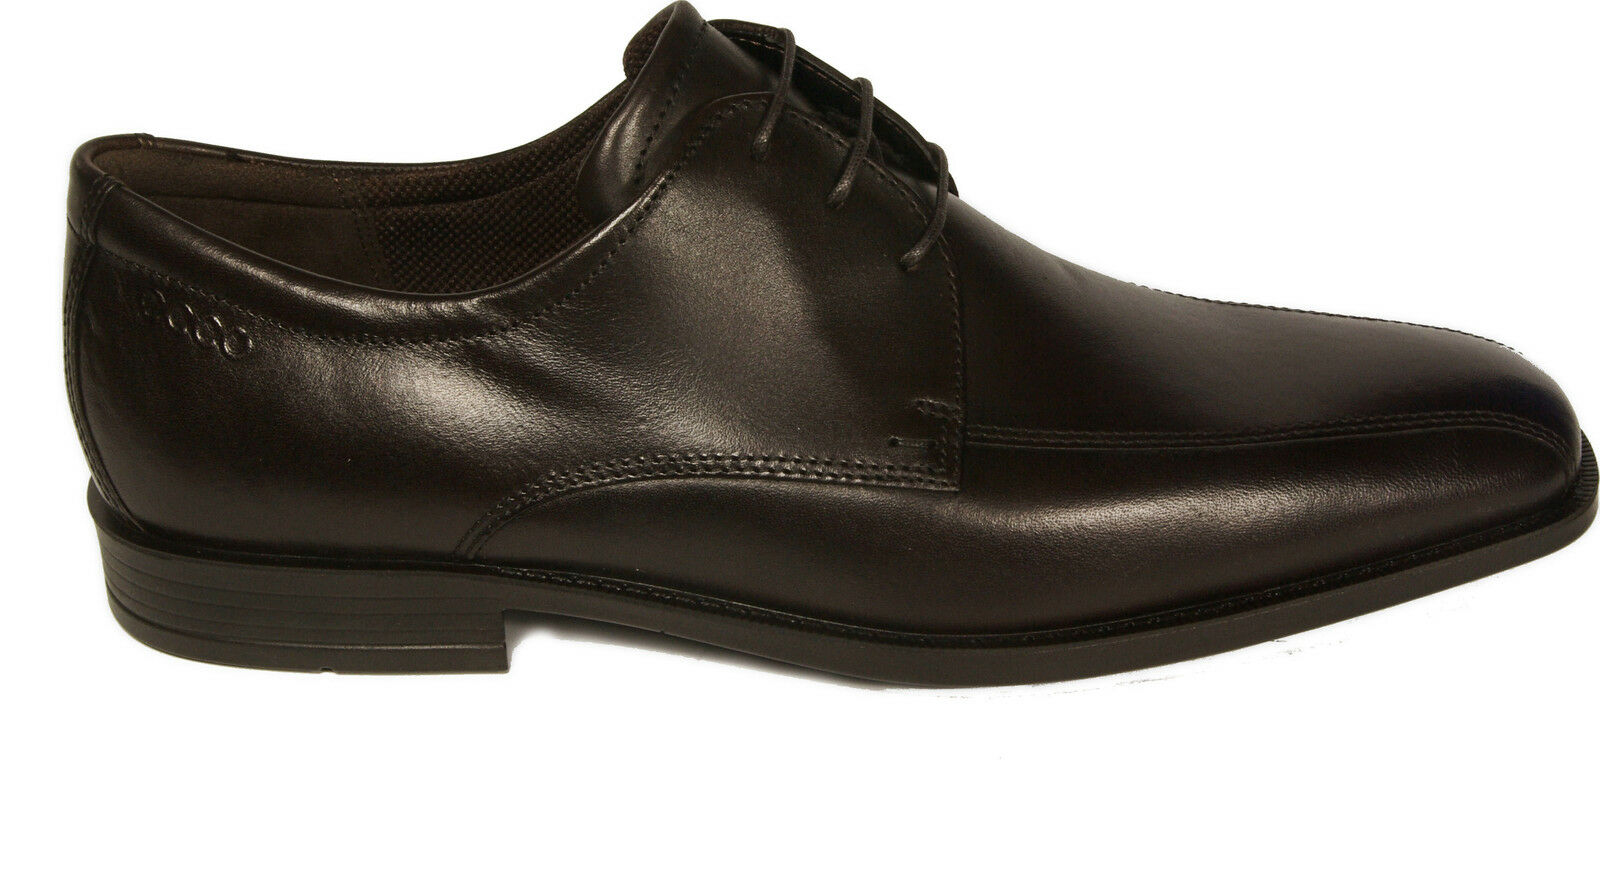 ECCO shoes mens shoes new shoes model EDINBURGH lace dark brown leather NEW